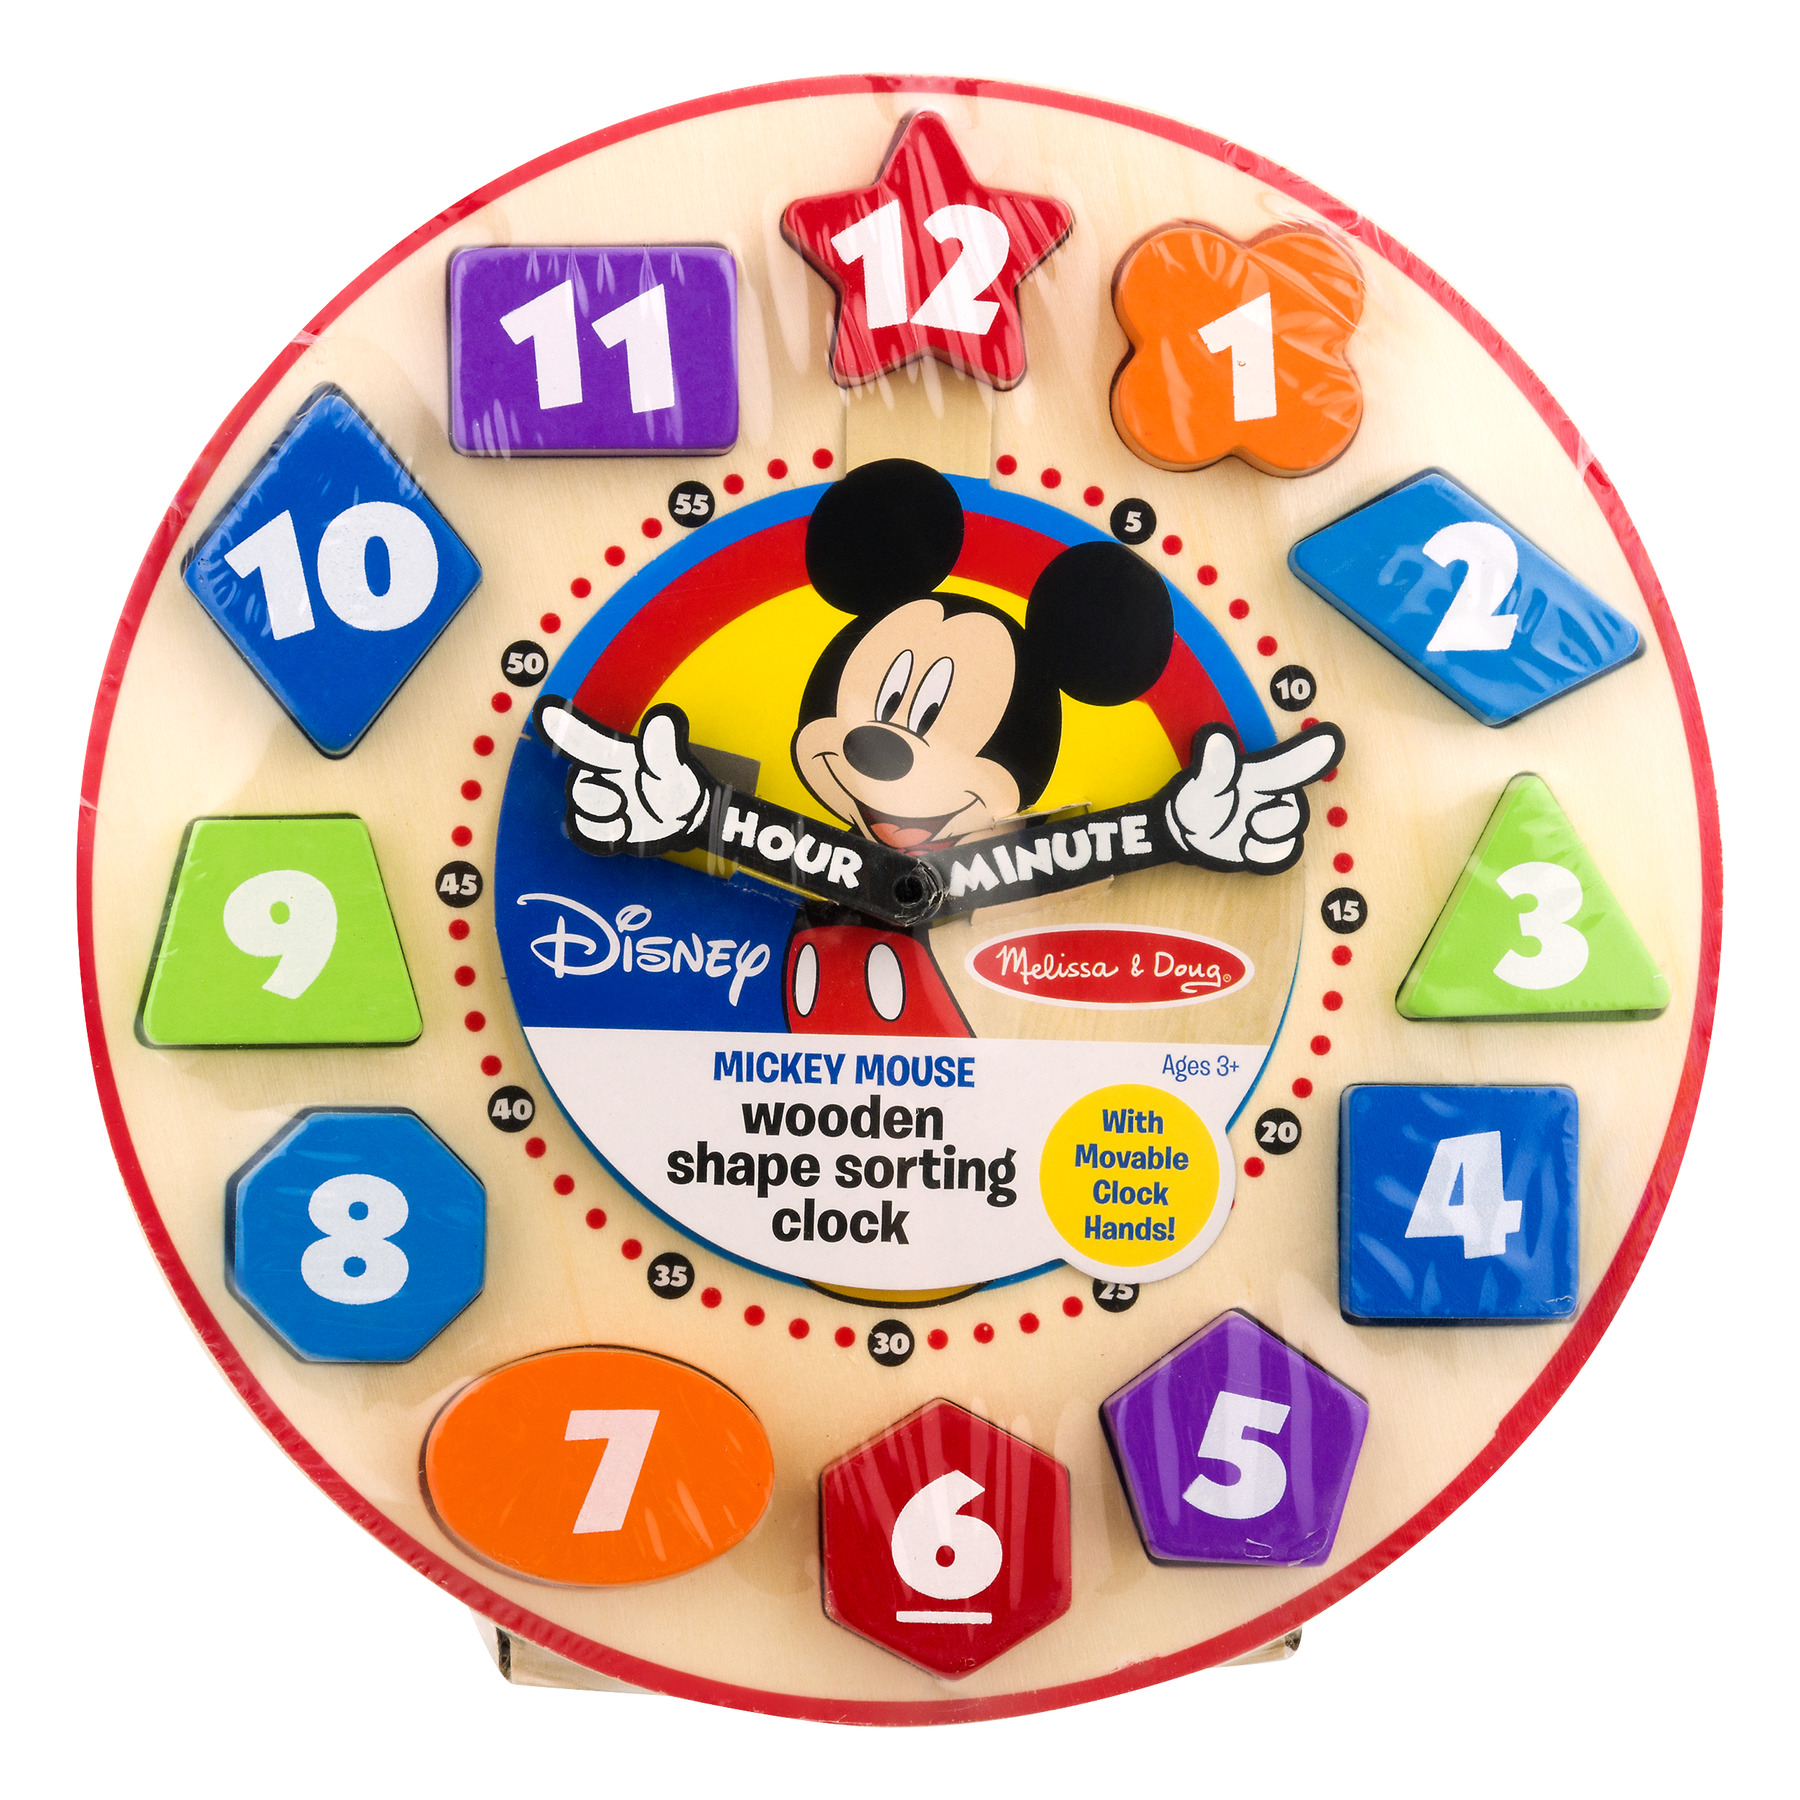 Disney Mickey Mouse Wooden Shape Sorting Clock, 1.0 CT by Melissa %26 Doug